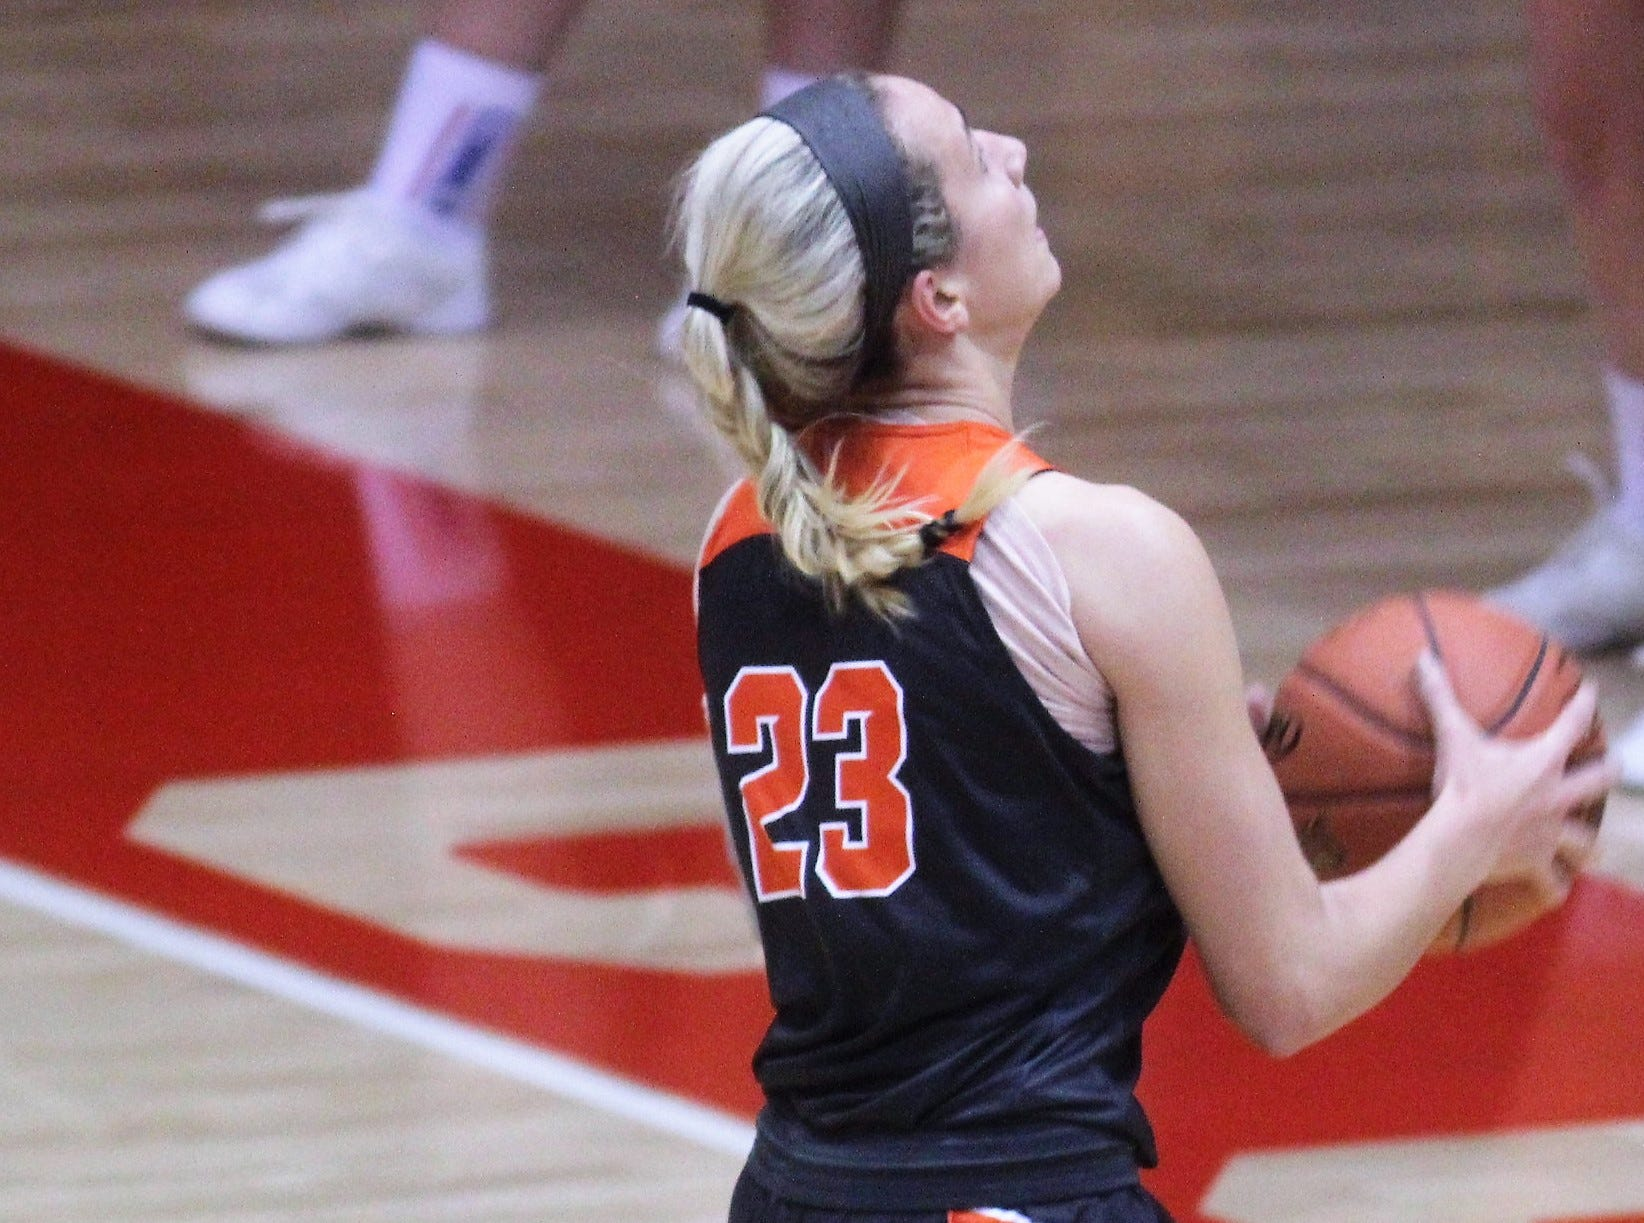 Ryle sophomore Brie Crittendon goes up to score a layup as Ryle defeated Conner 60-49 in a girls basketball district game Dec. 7, 2018 at Conner High School, Hebron KY.